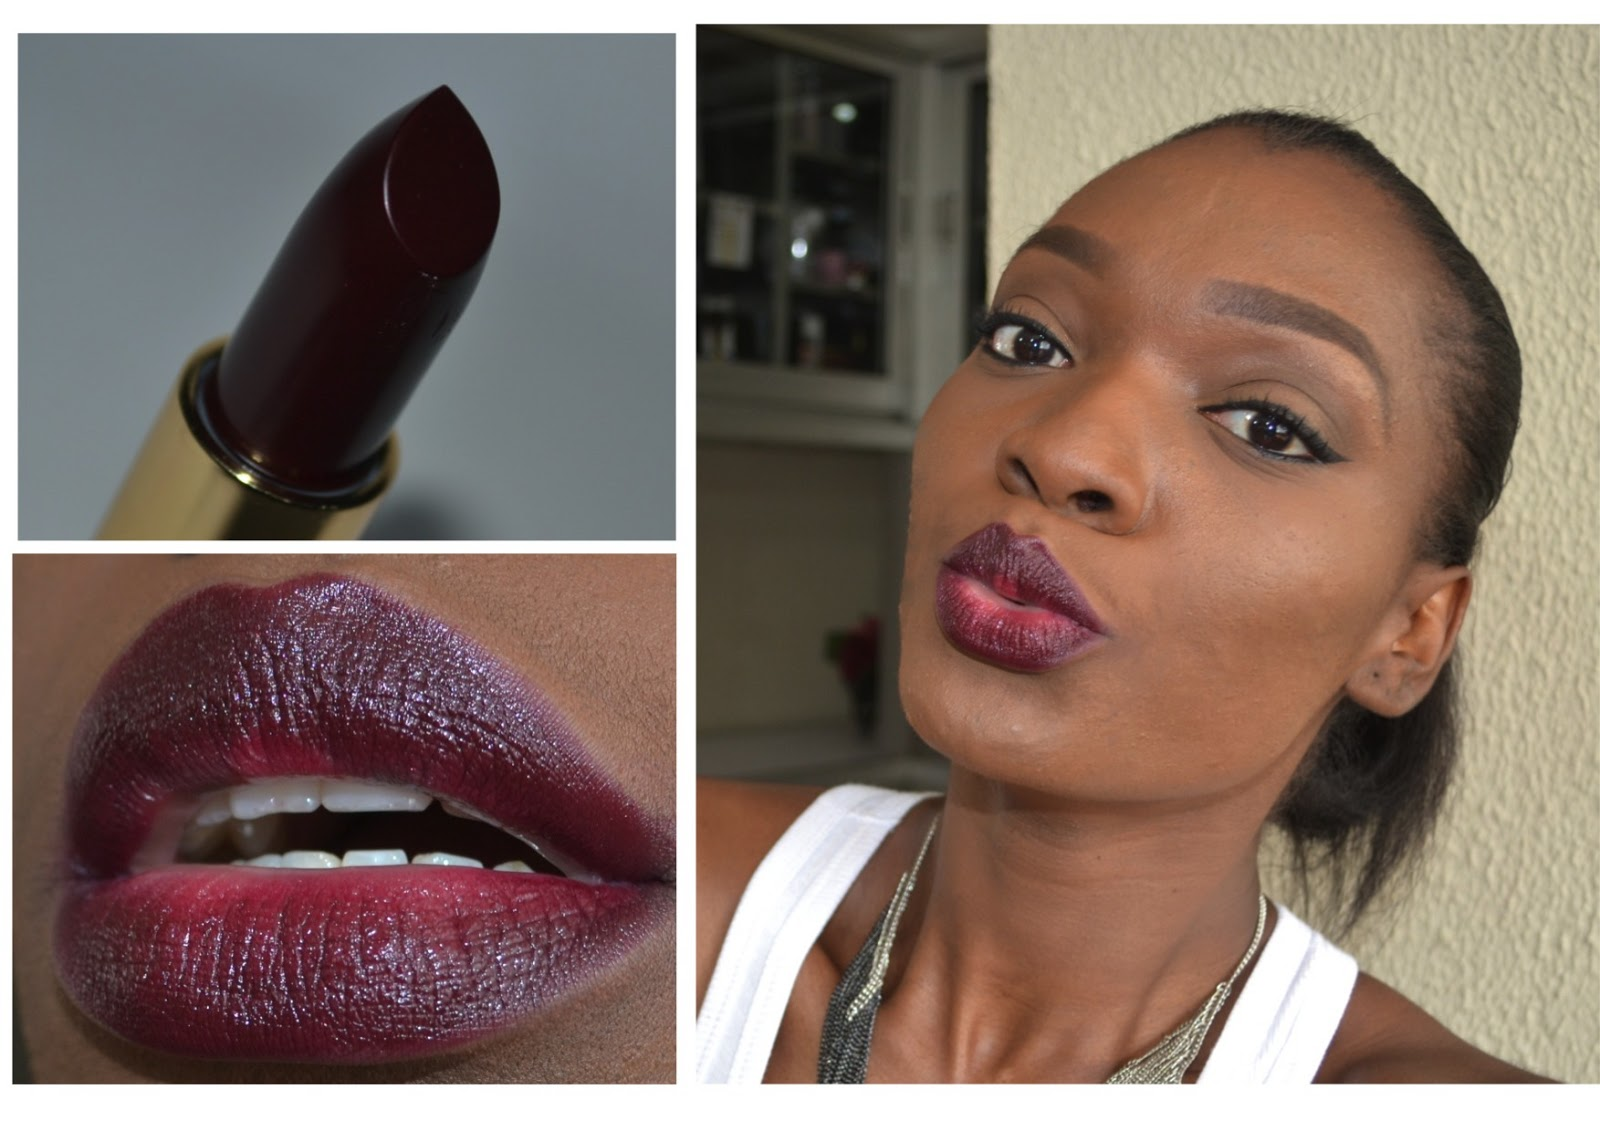 If you are not bold enough to go full on with a dark lip try fading it